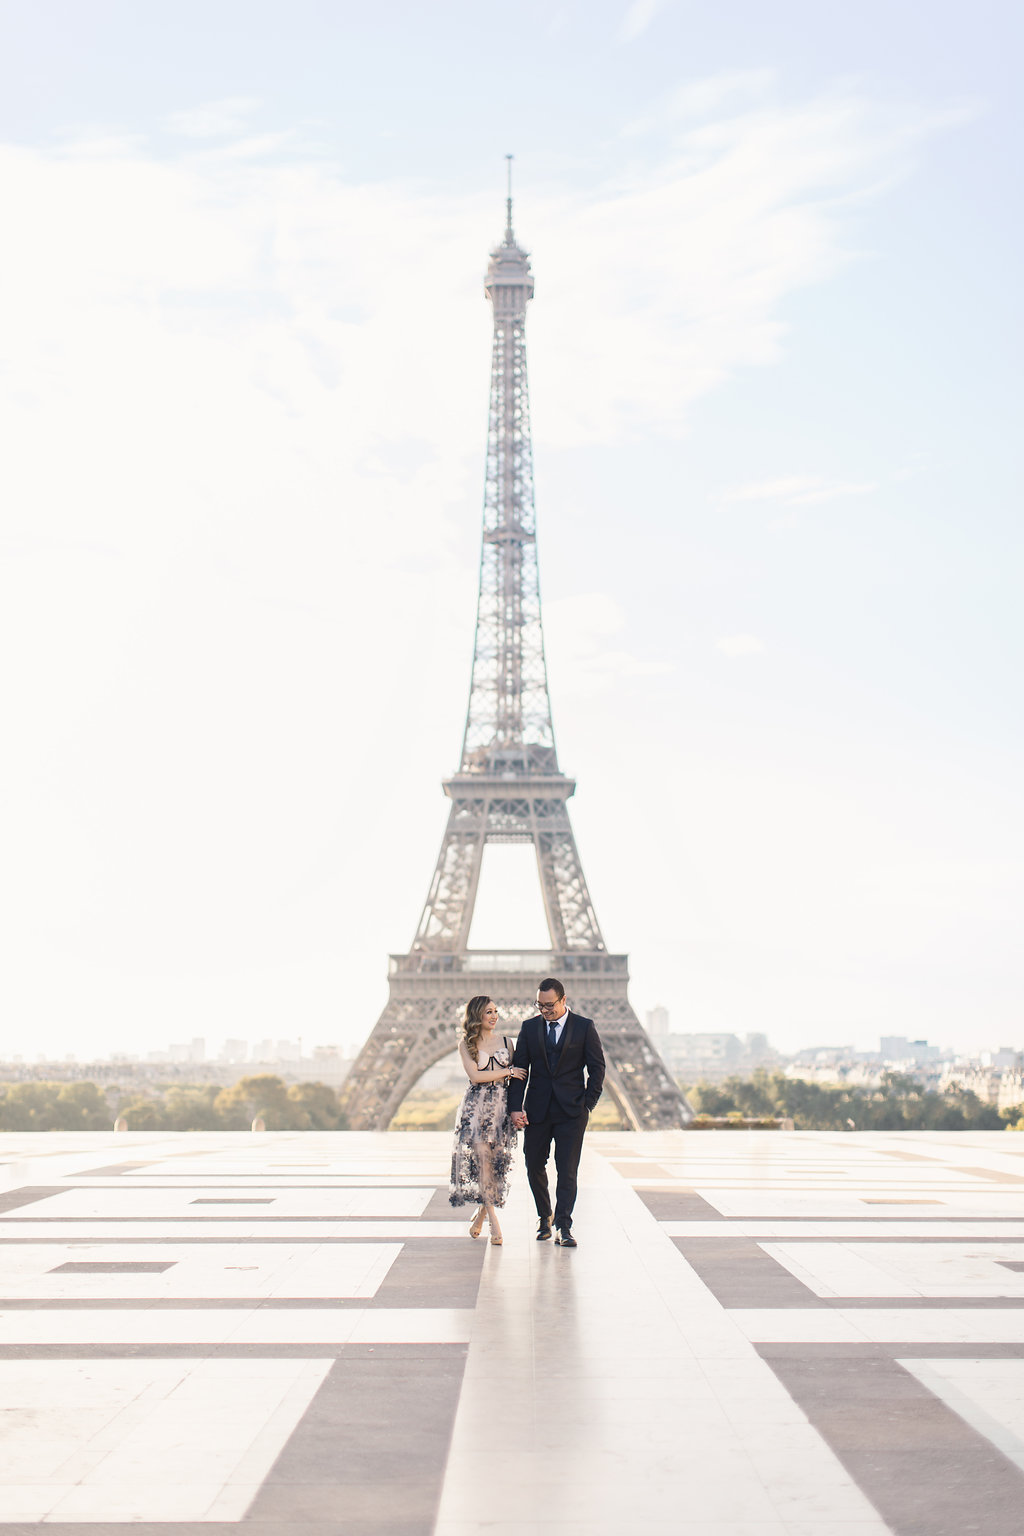 Paris Wedding Photoshoot at Eiffel Tower, Petit Palais, Louvre and Parisian Cafe by Celine on OneThreeOneFour 2